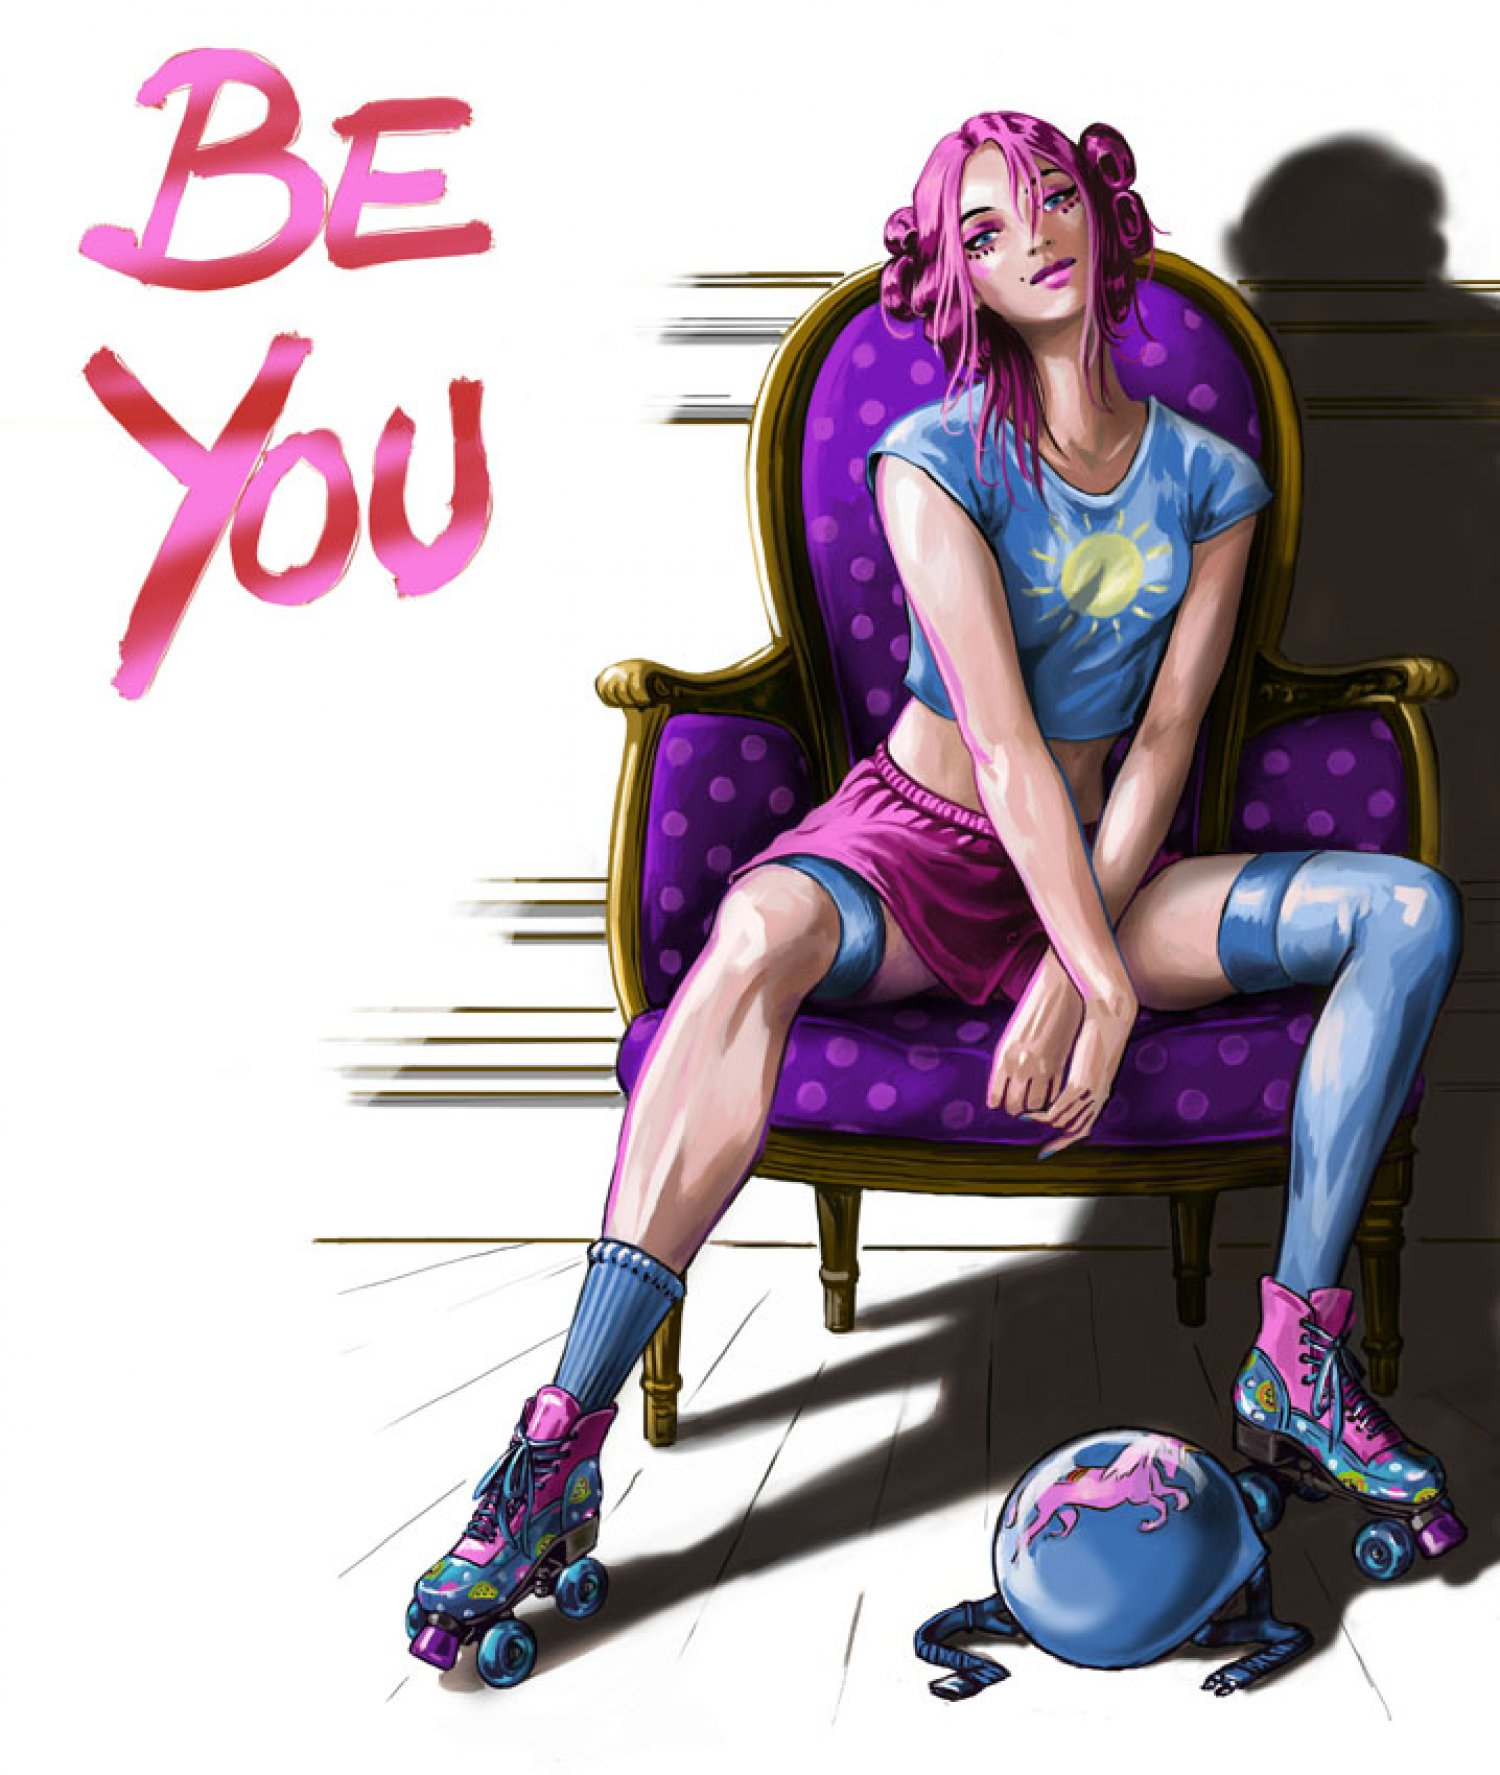 BE YOU 2